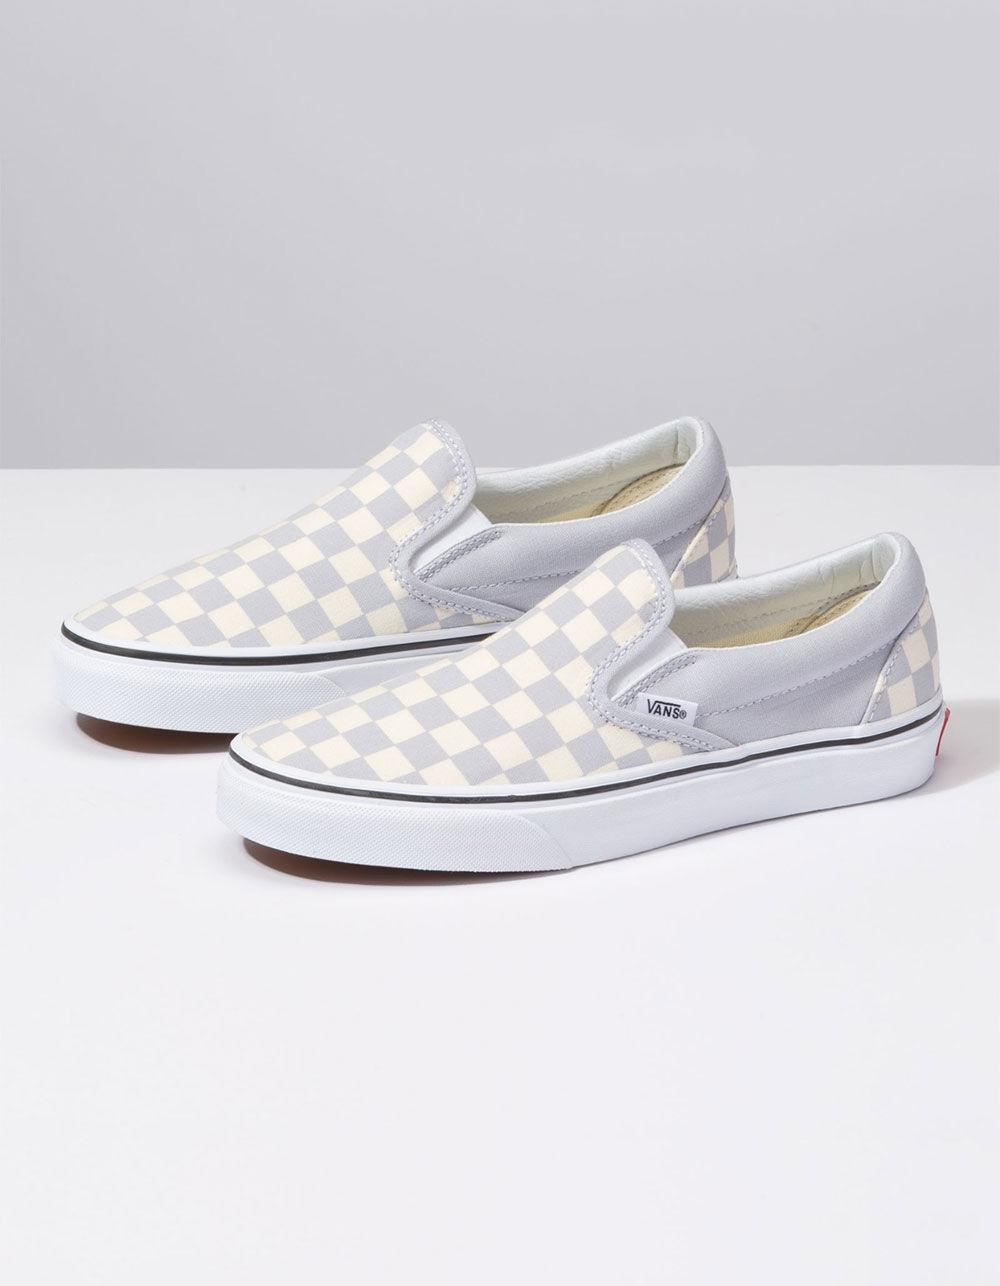 01665a6c549a59 Lyst - Vans Checkerboard Gray Dawn   True White Womens Slip-on Shoes ...